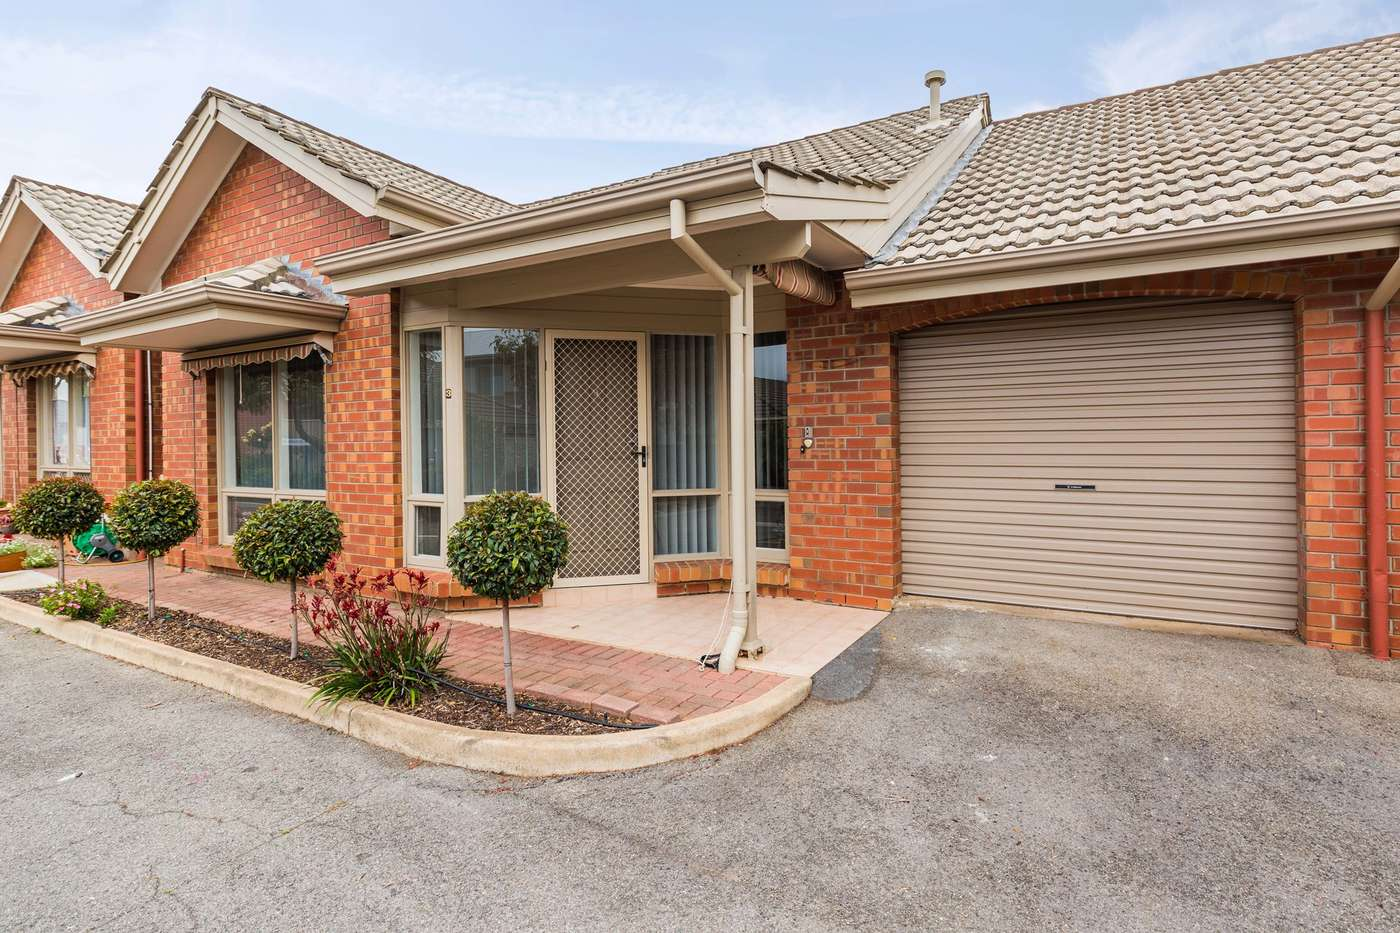 Main view of Homely unit listing, 3/3 Edward Street, Glynde, SA 5070